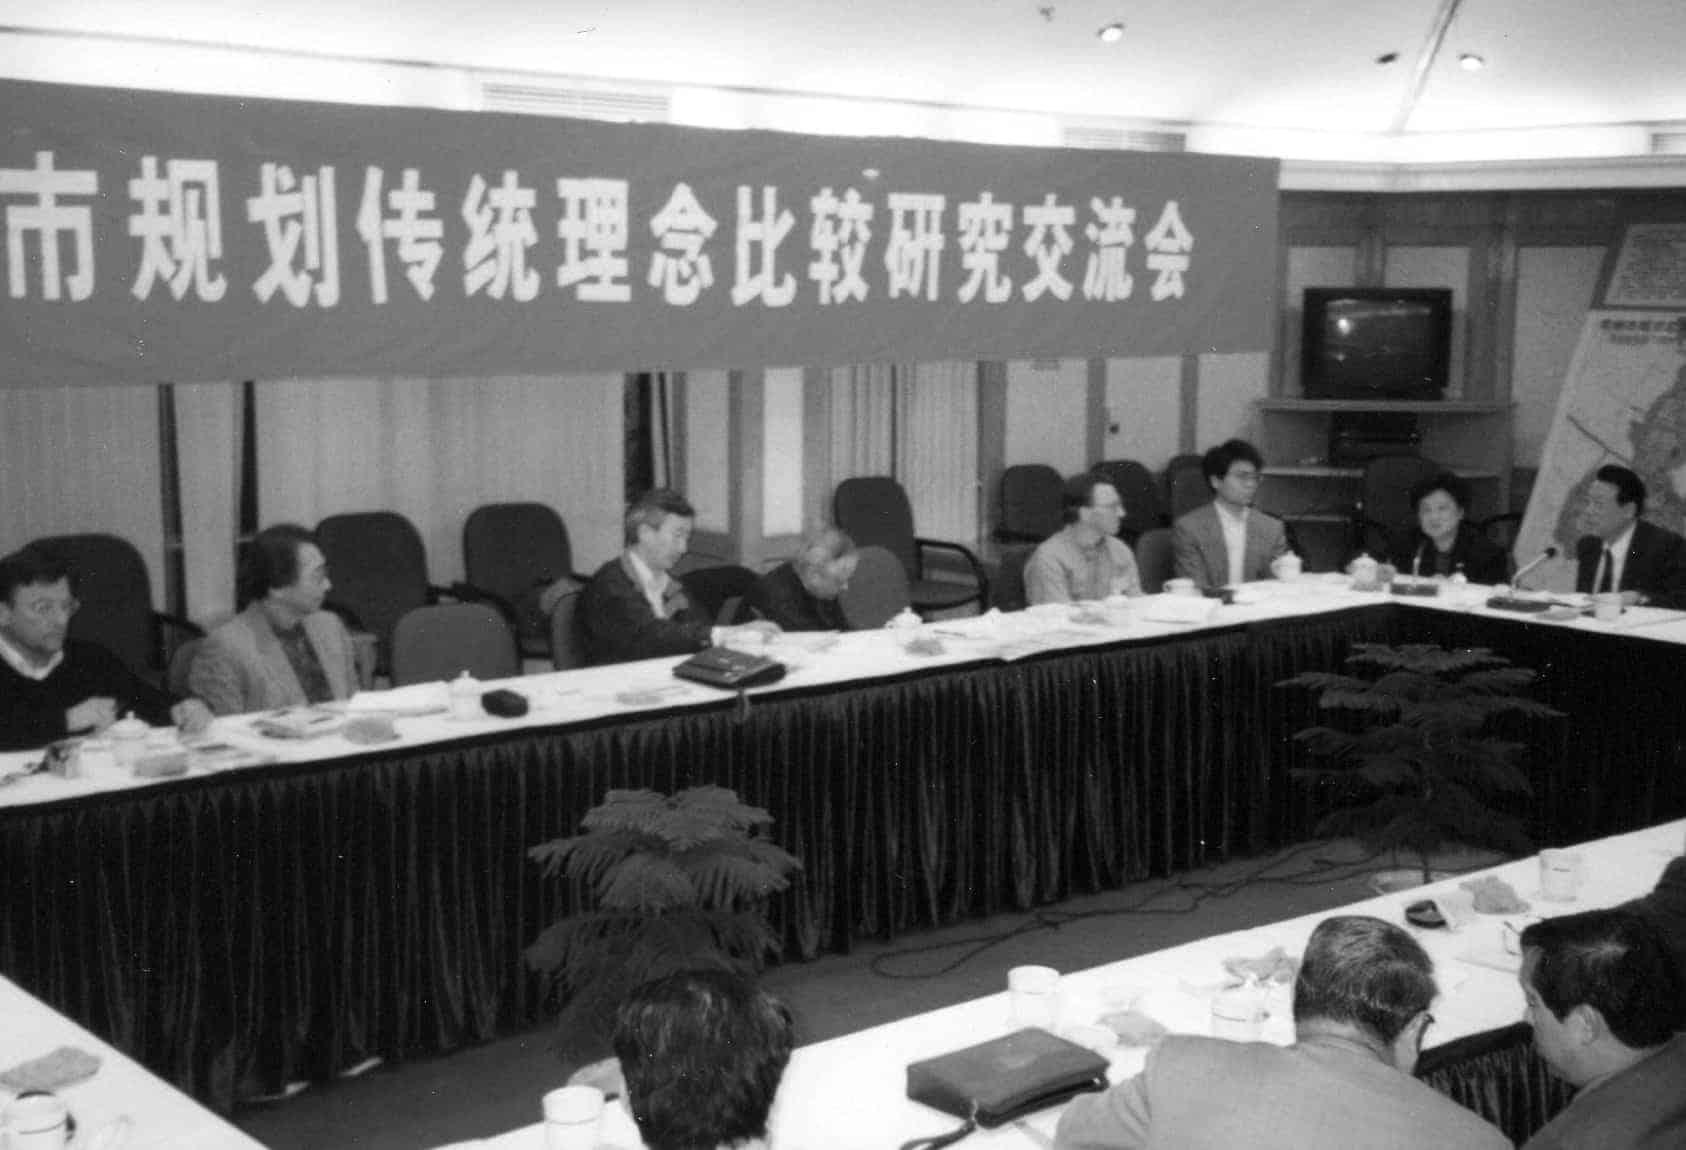 Participants at the Leadership Conference in Kunming, China